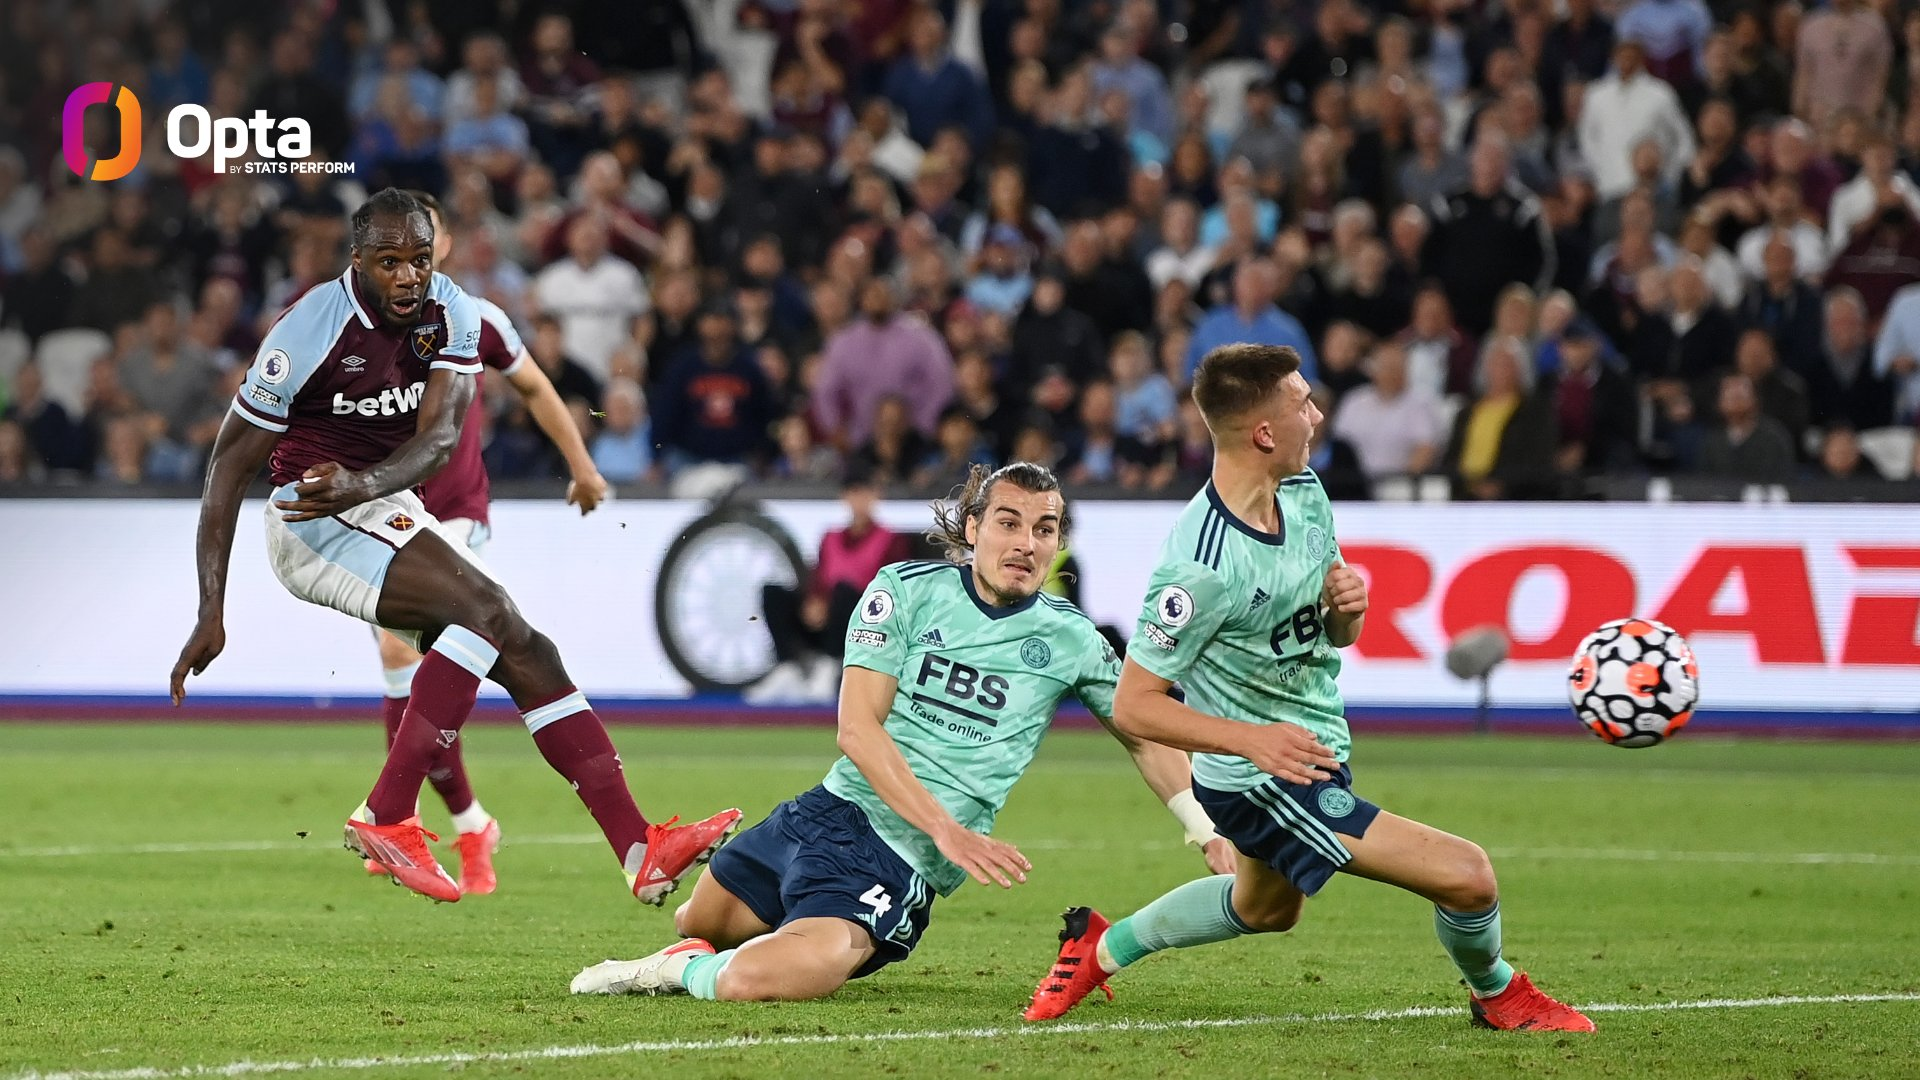 Premier League: Ndidi, Iheanacho Suffer Heavy Defeat With Leicester At West Ham